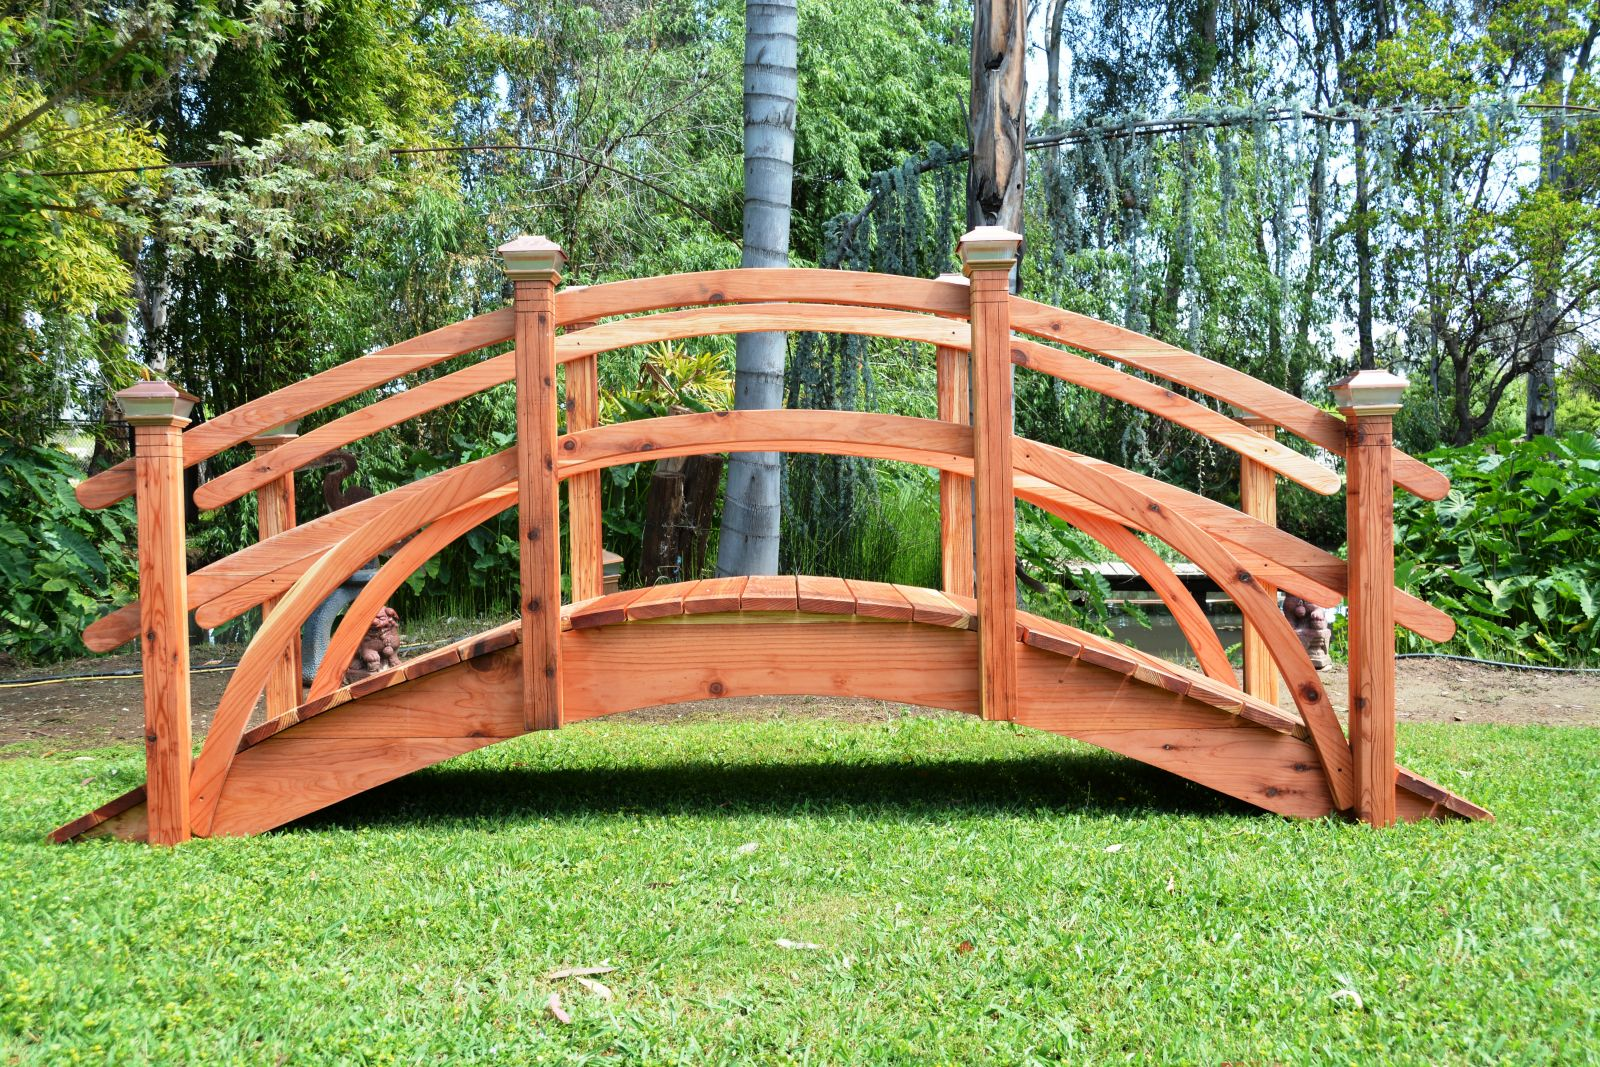 Charming We Have Already Had Great Feedback On This Style And Design. Please Call  Redwood Garden Bridges To Place Your Order